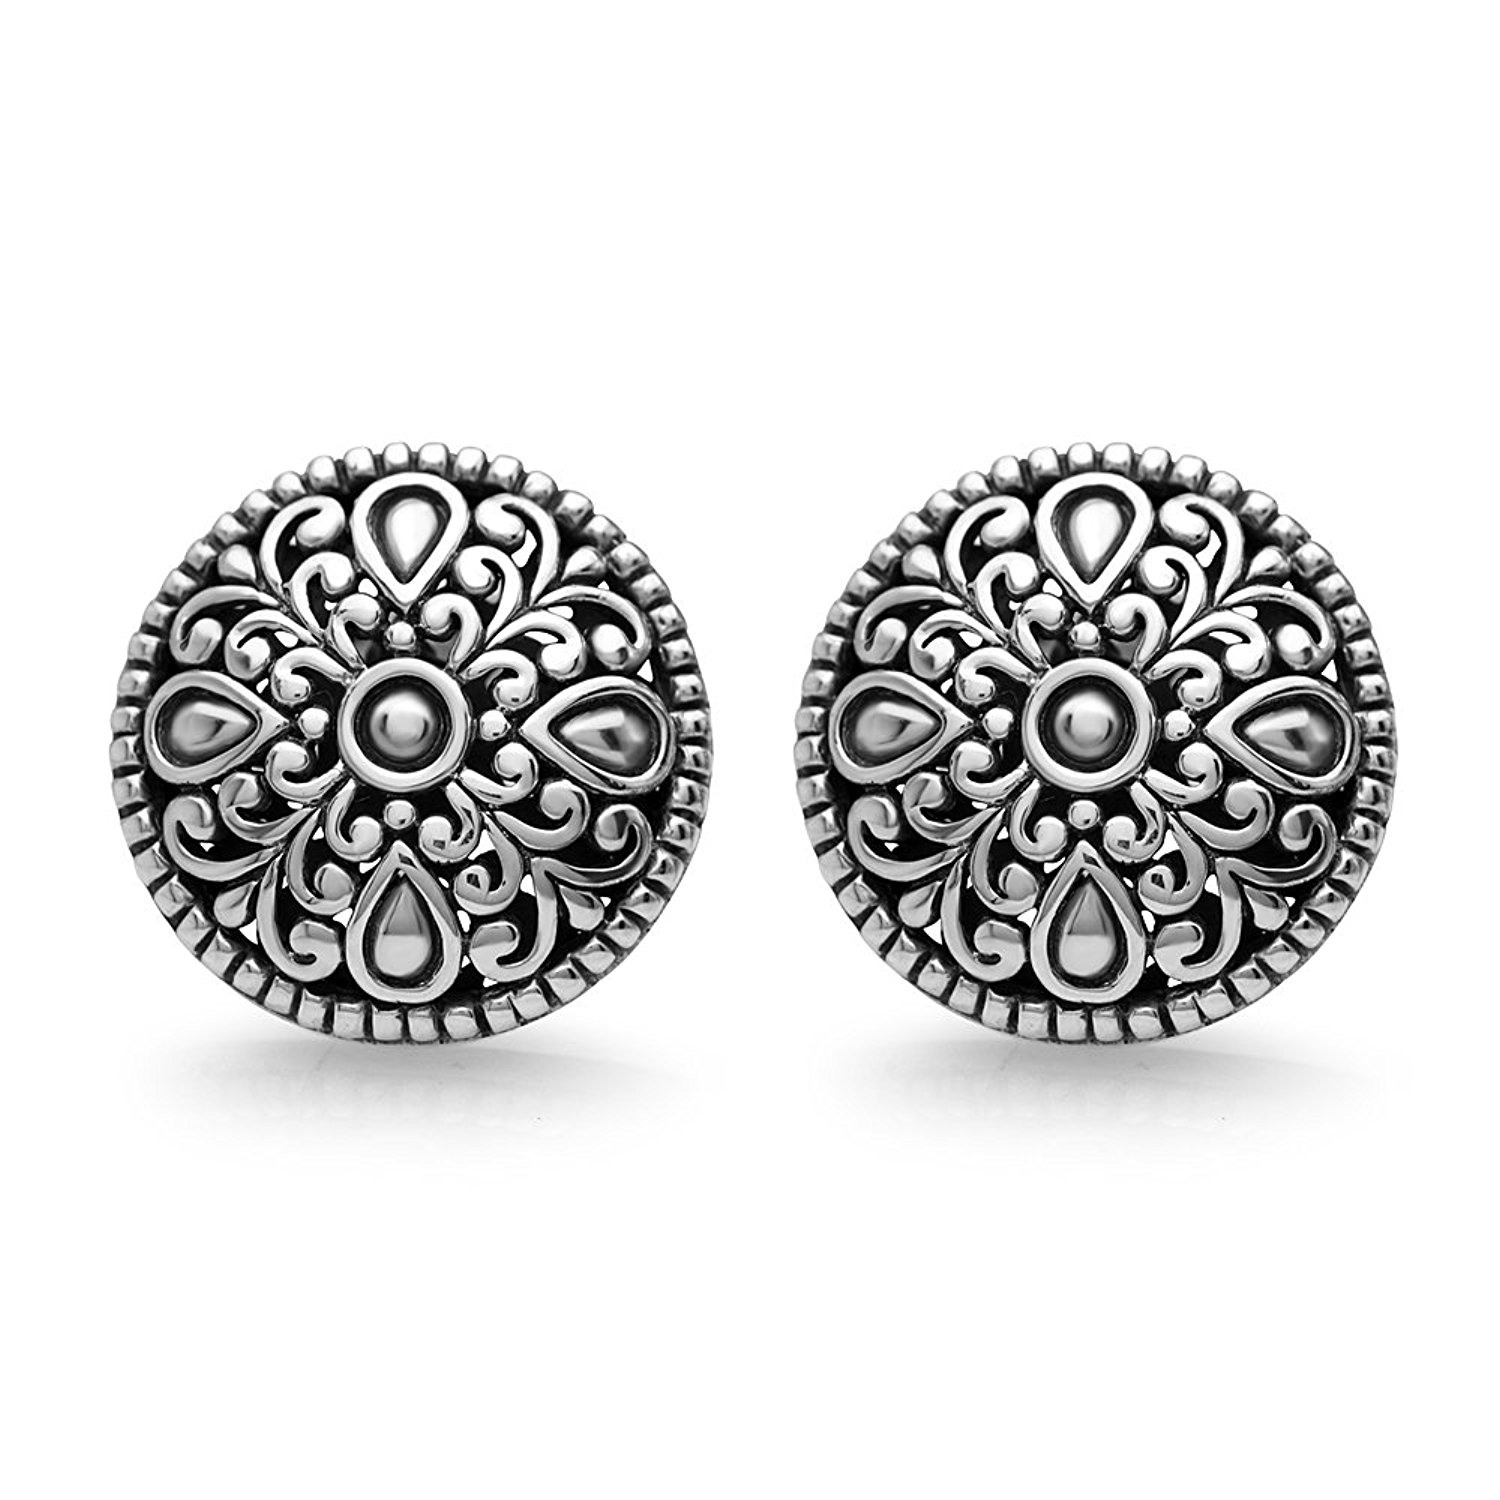 925 Oxidized Sterling Silver 15 mm Detailed Filigree Mandala Bali Inspired Round Post Stud Earrings